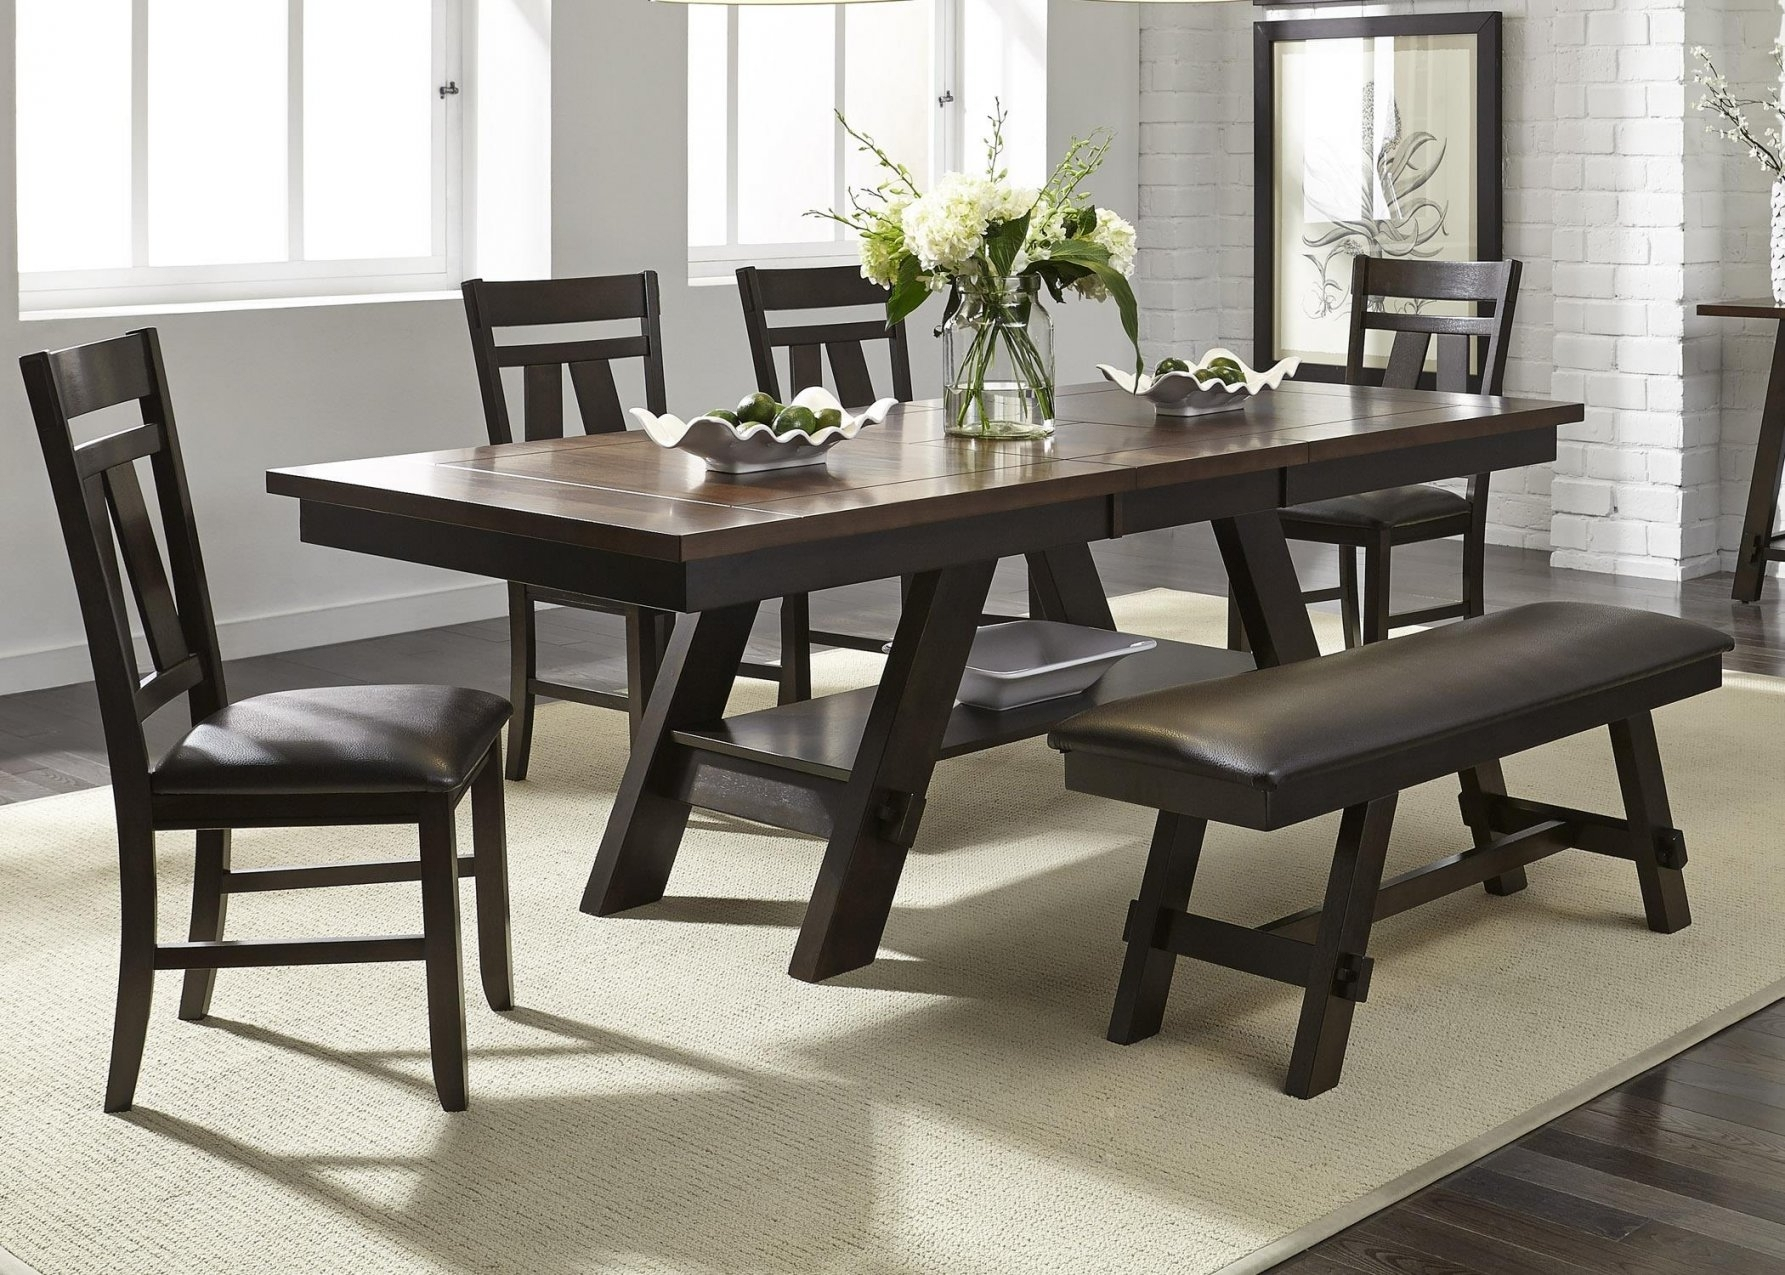 6 Piece Dining Table Set – Castrophotos In Newest Partridge 7 Piece Dining Sets (Image 1 of 20)